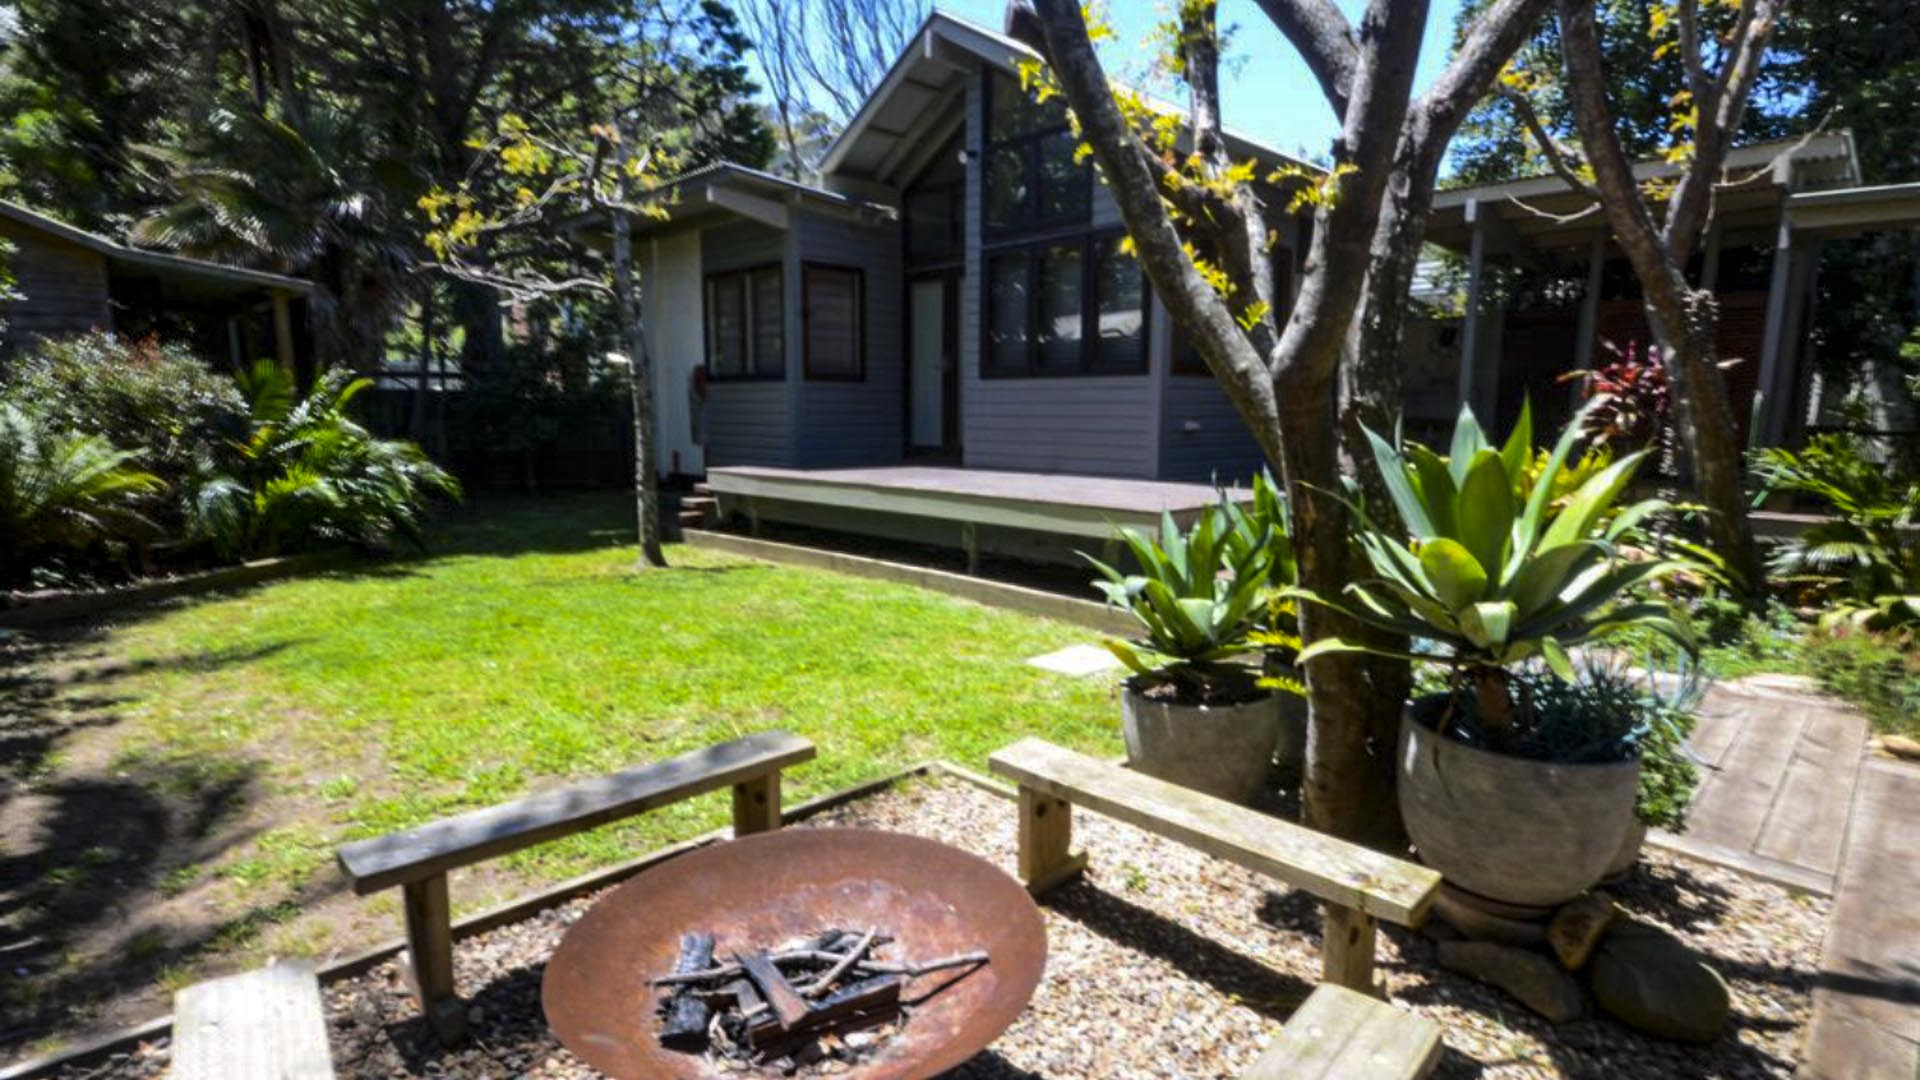 Back Yard with Annex, Lawn, Garden, Firepit and Morson's Hut. Copa Beachside.